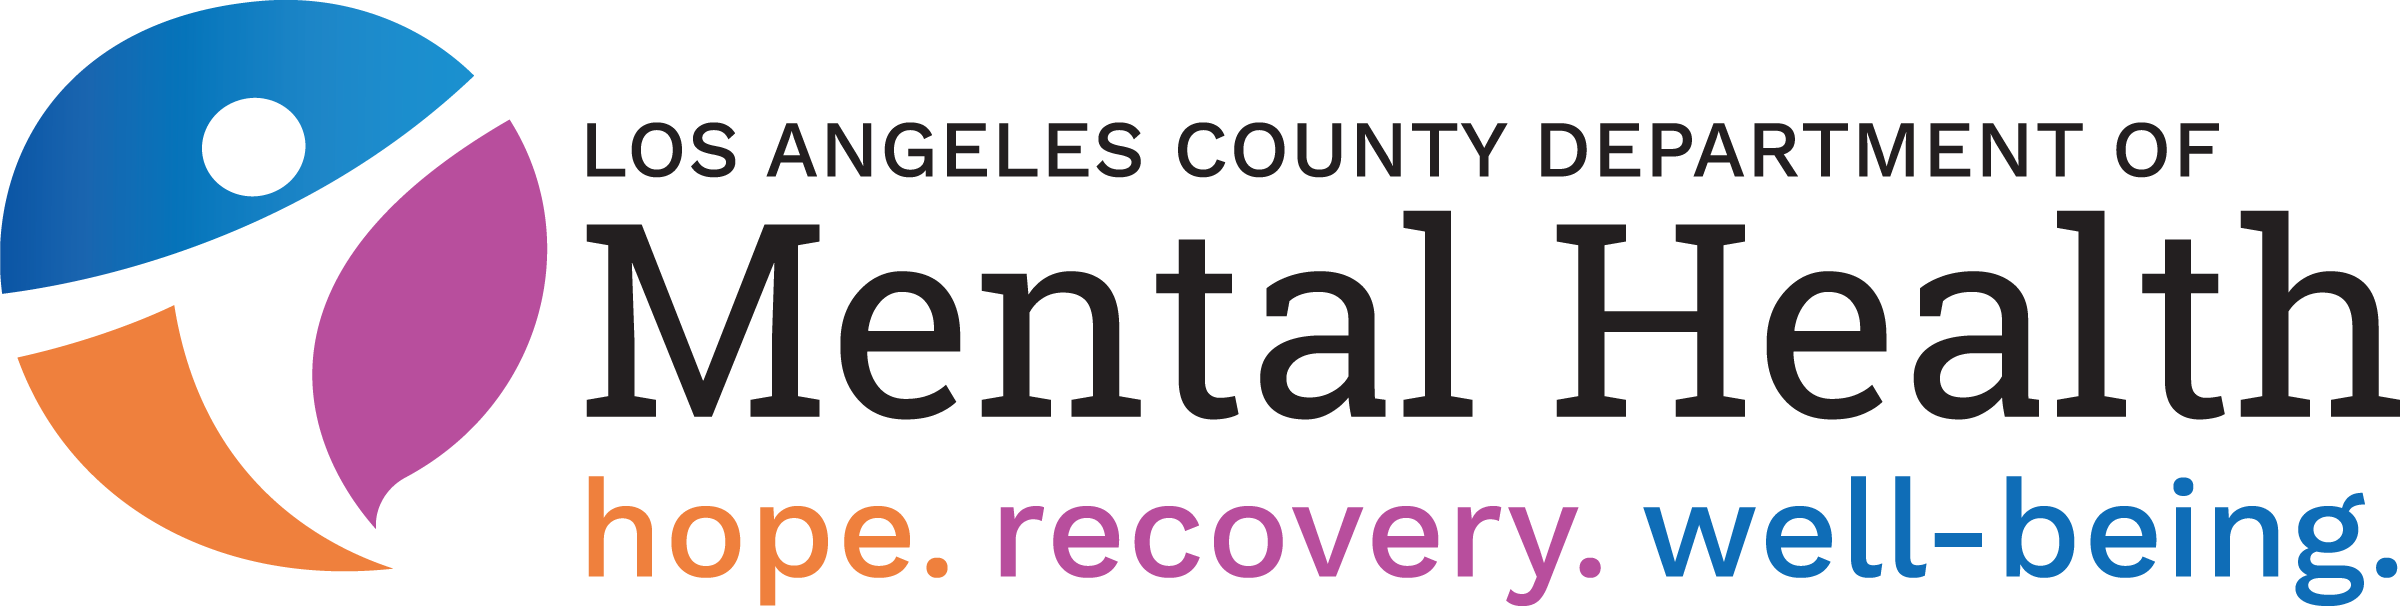 Los Angeles County Department of Mental Health logo